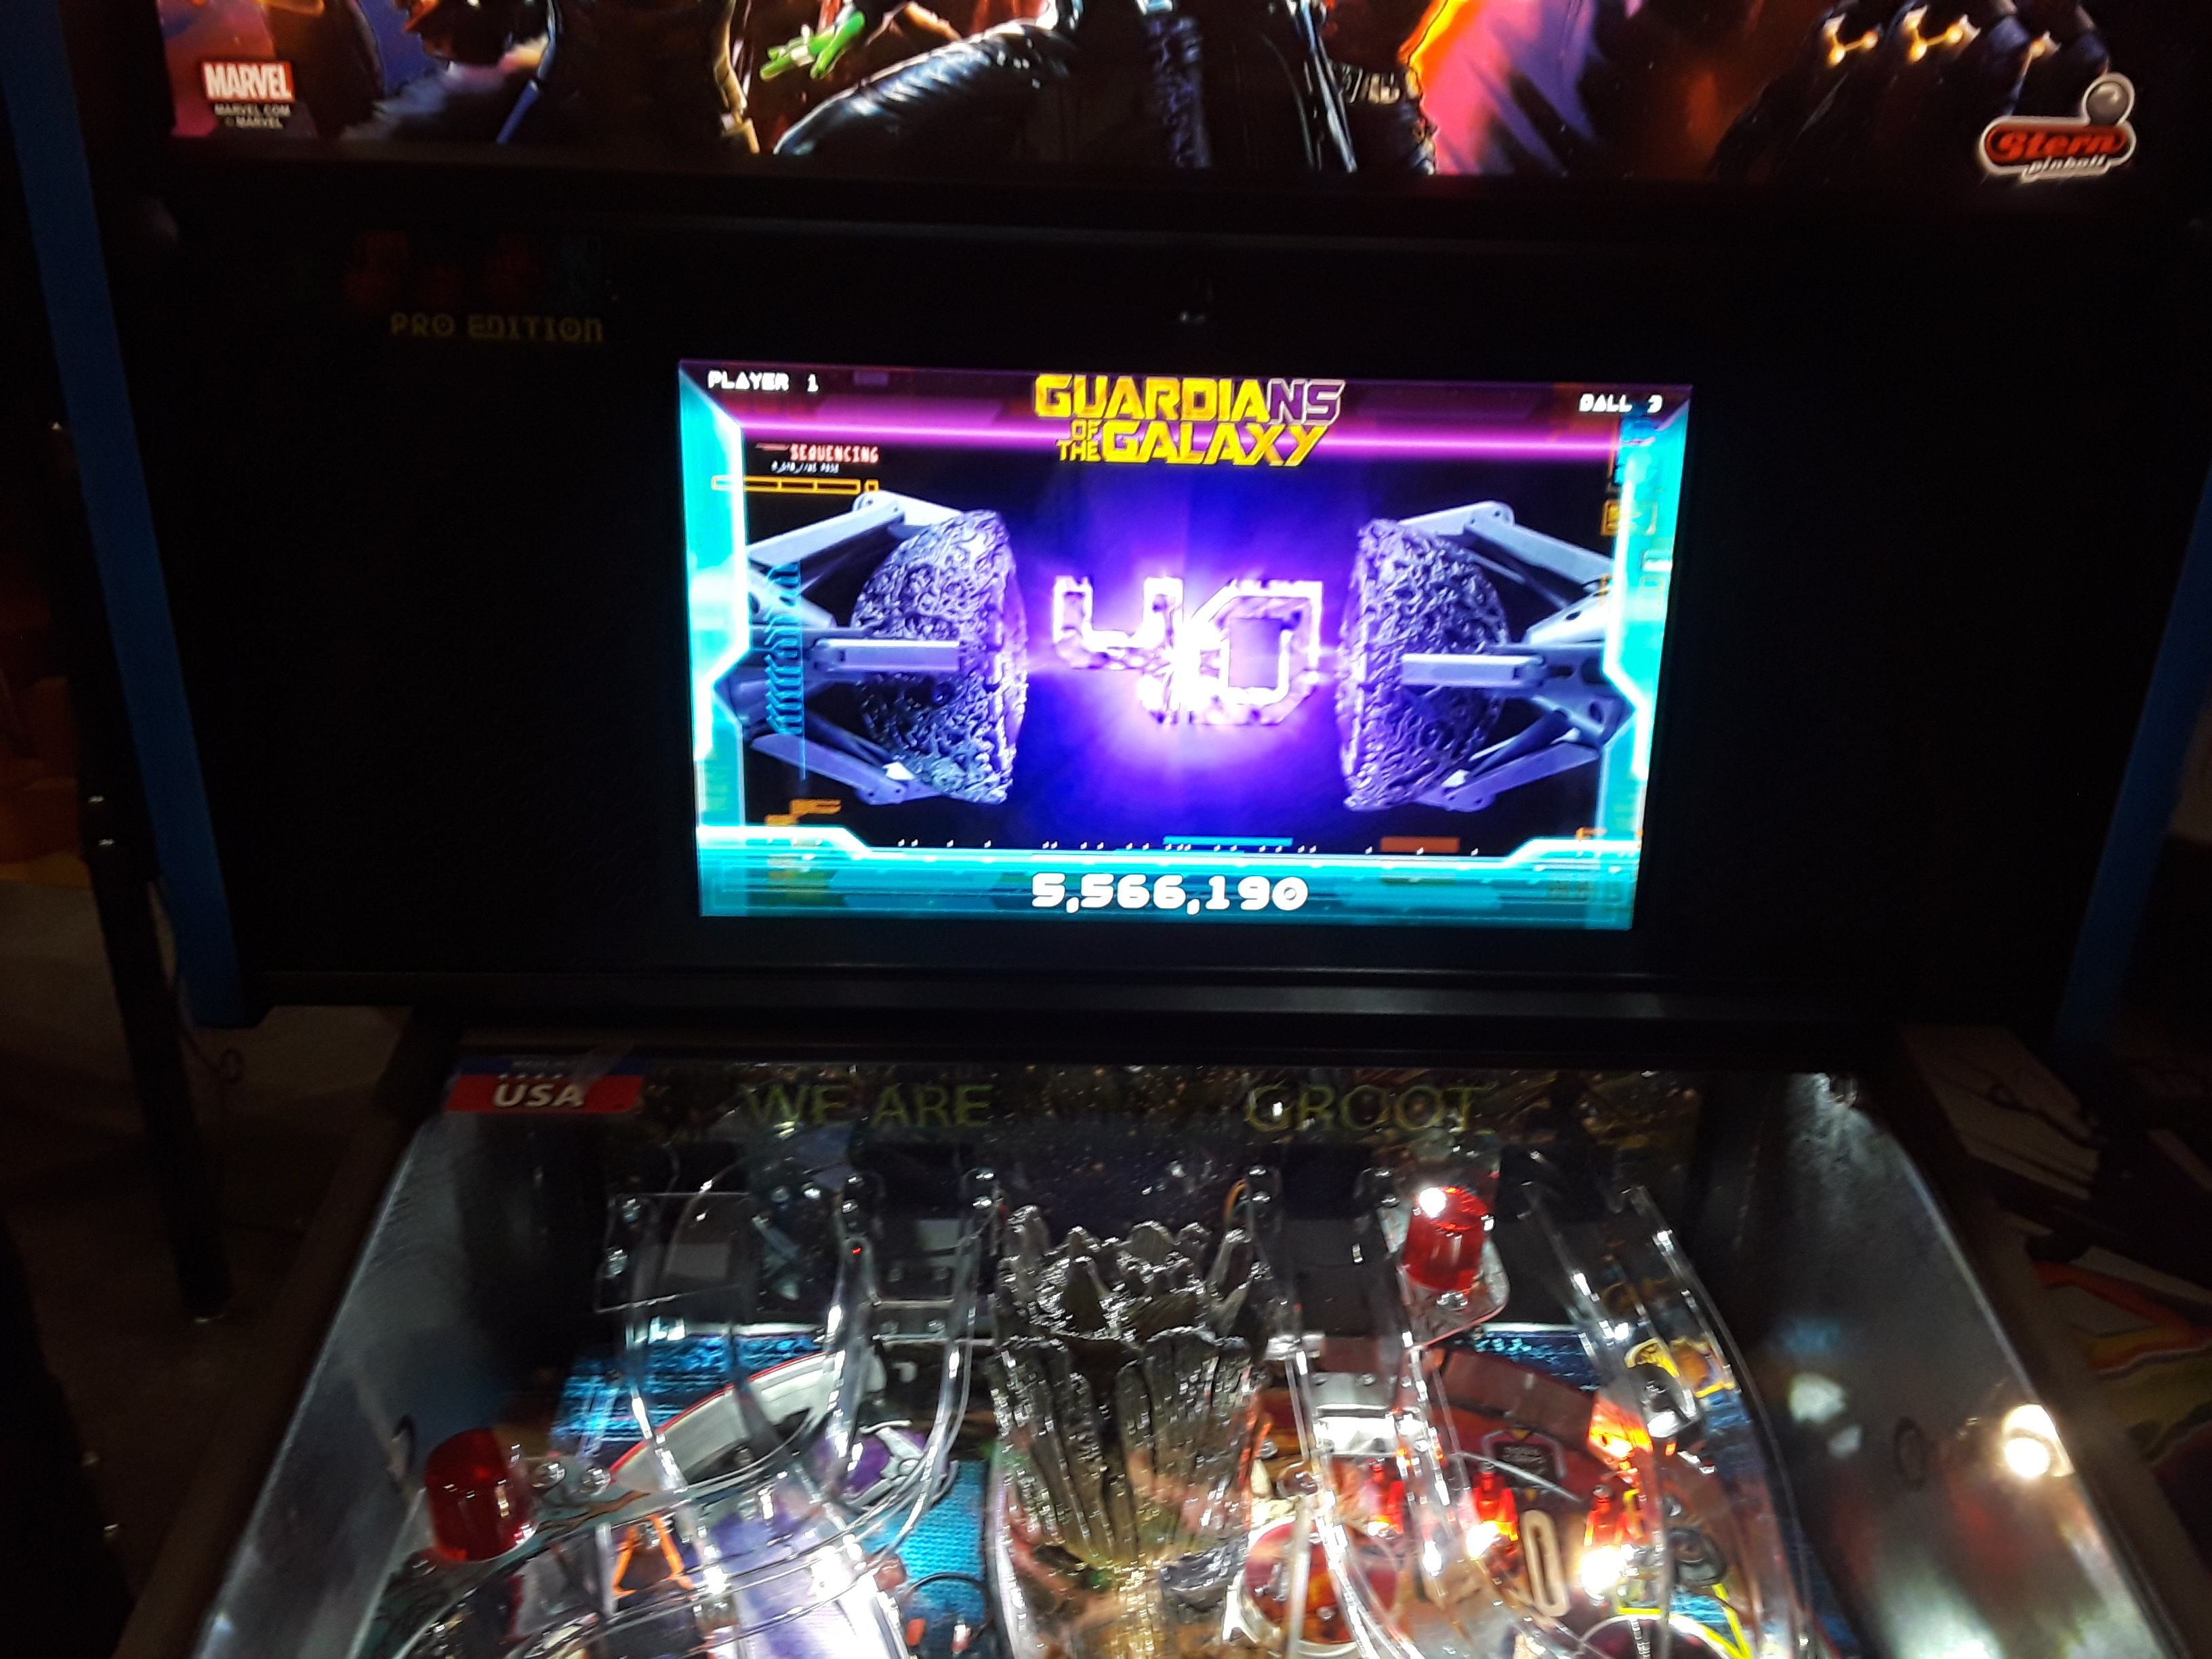 Guardians Of The Galaxy 5,566,190 points